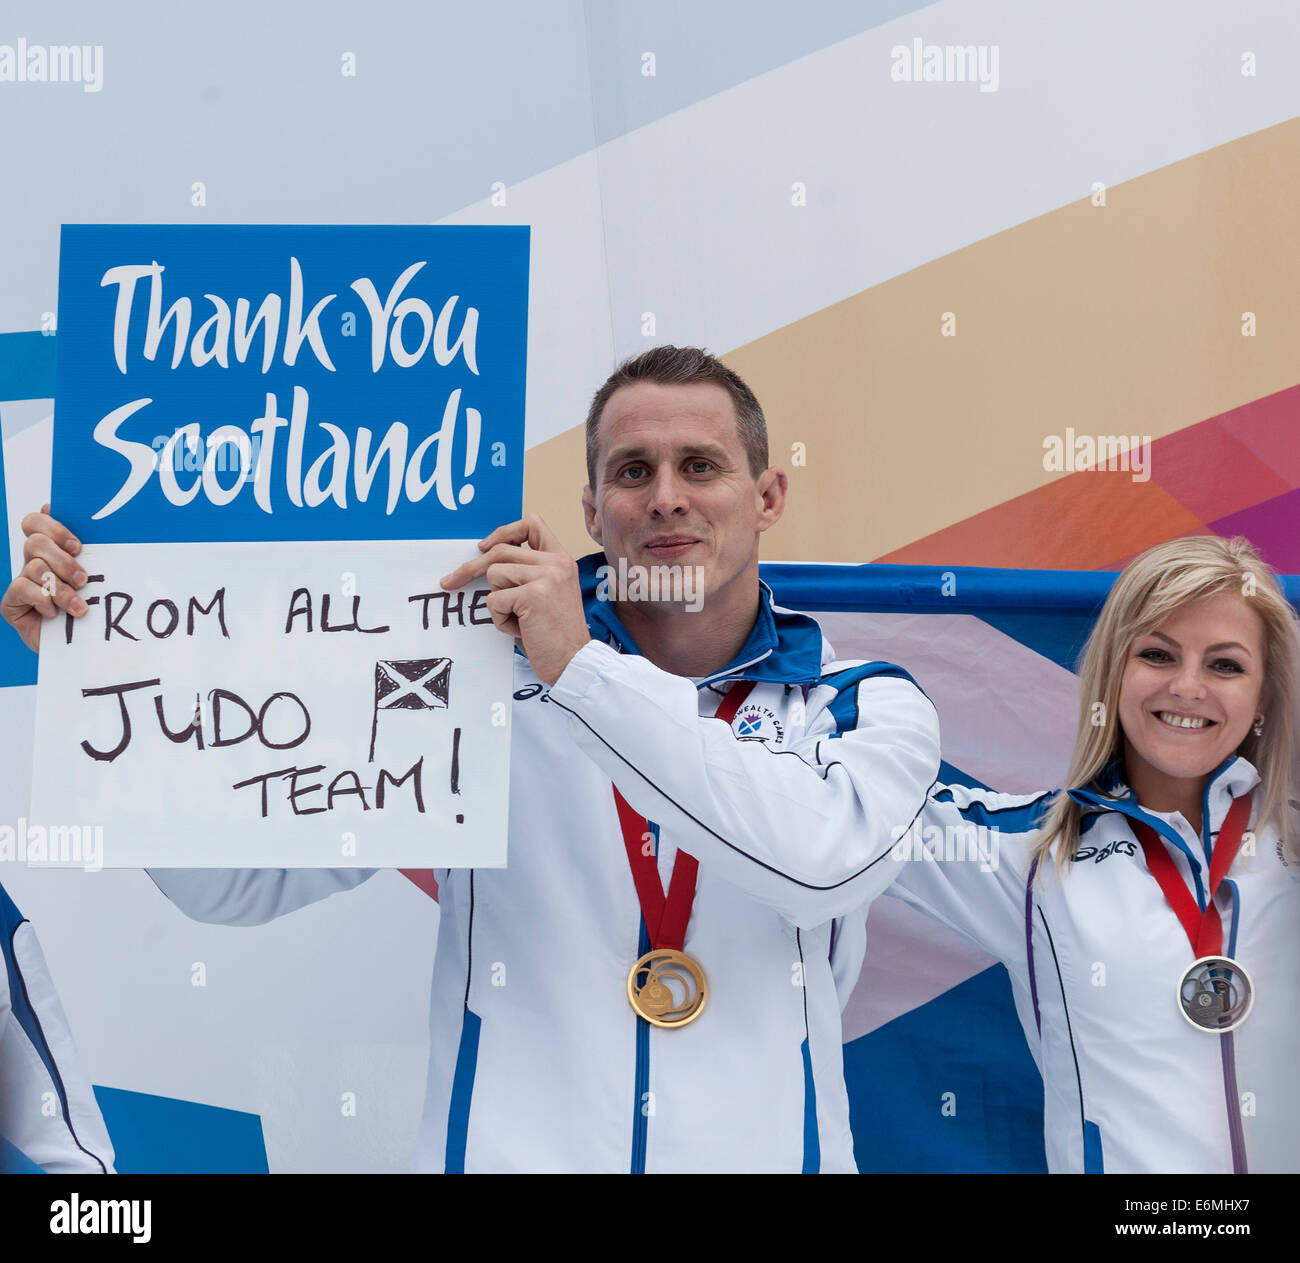 Euan Burton, gold medal judoka, holding up a Thank You Scotland sign, with silver medallist Stephanie Inglis, George - Stock Image